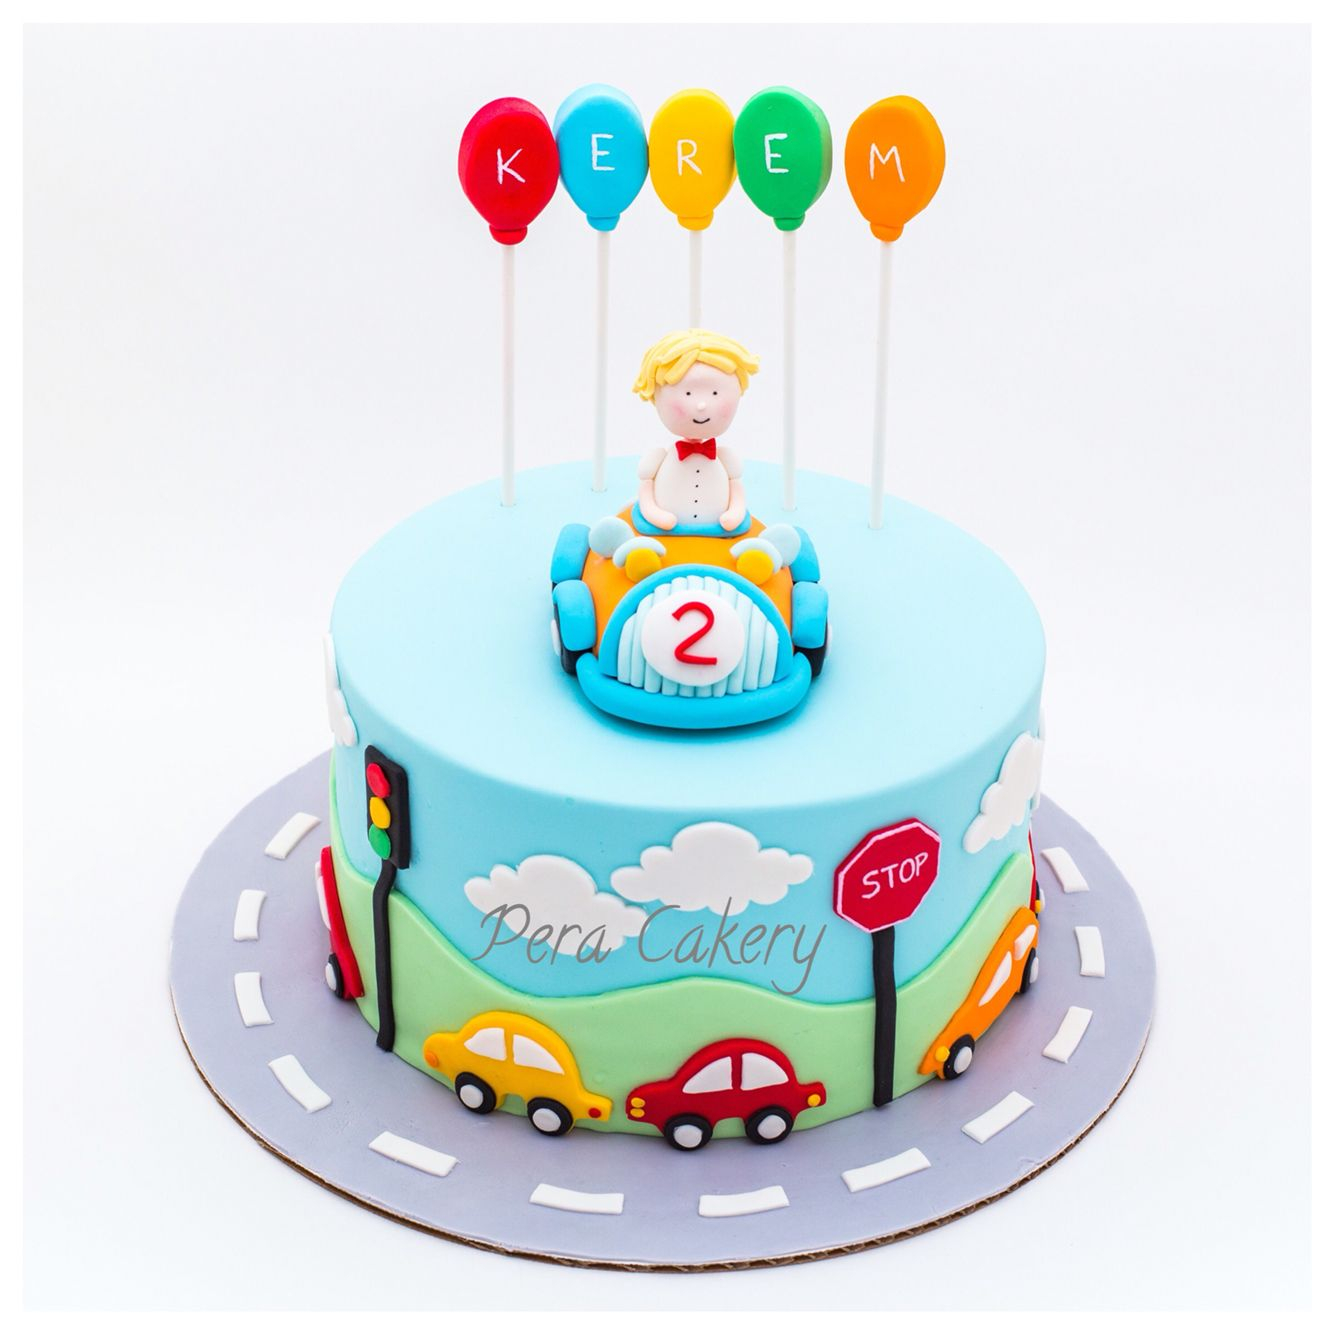 Birthday Cake Boy Car Cake For A 2 Year Old Boy Pera Cakery Cakes Pinterest Cake